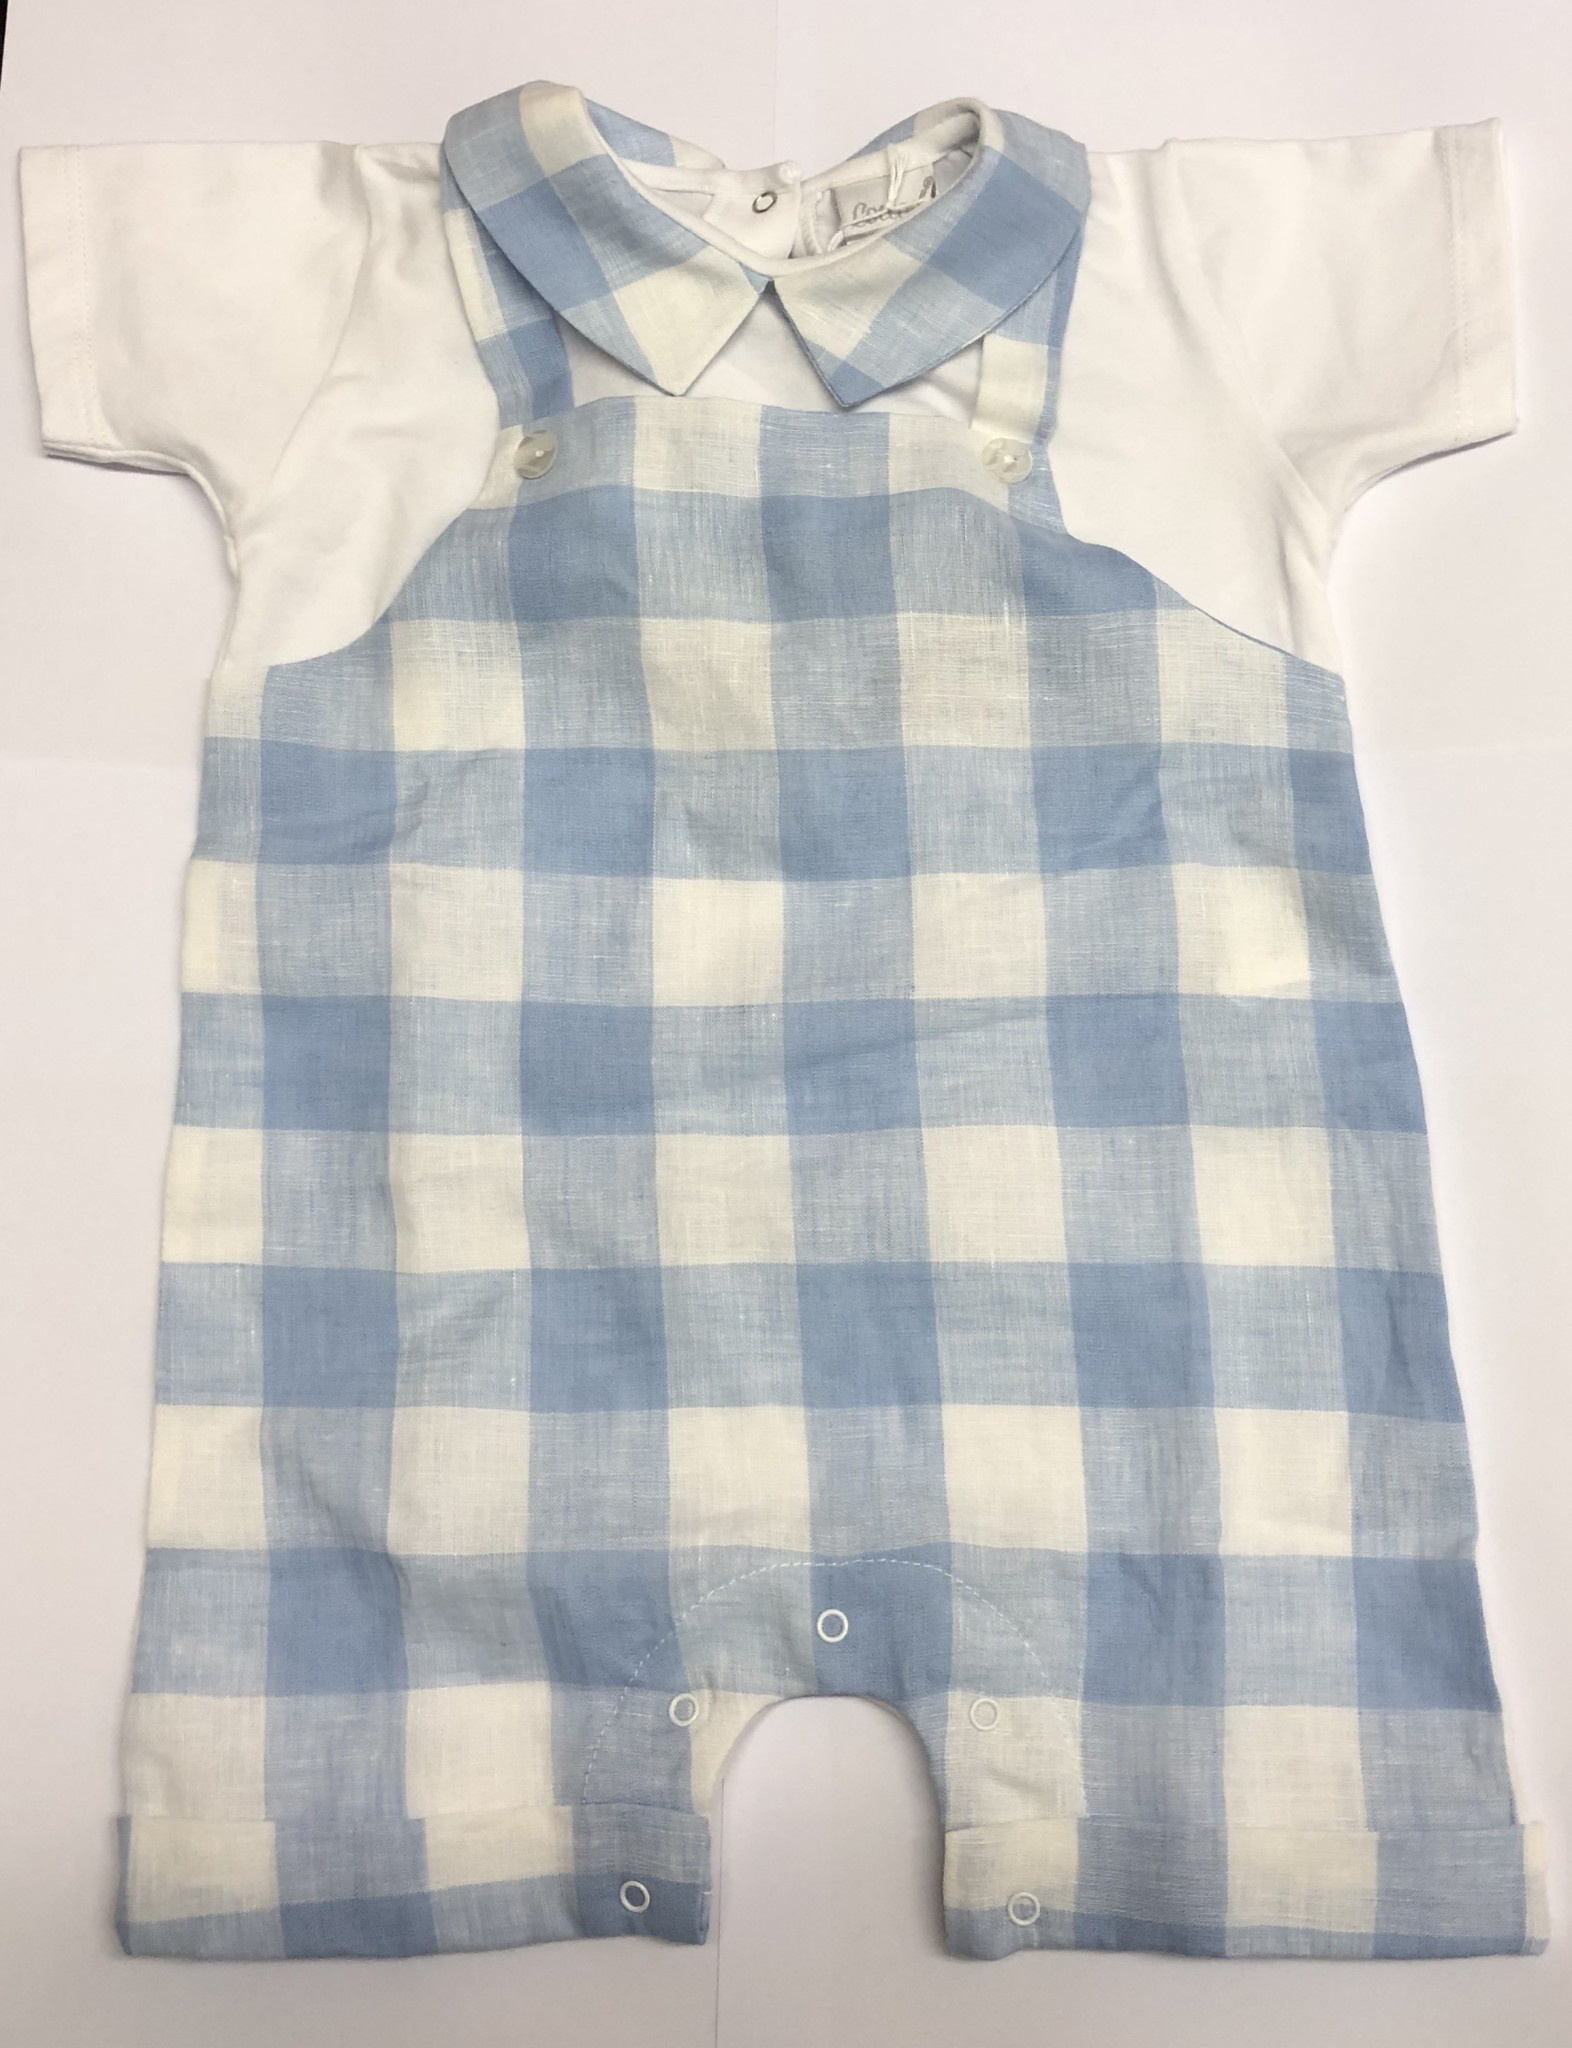 Coccode Coccode Pale Blue Check T-shirt ,Dungarees